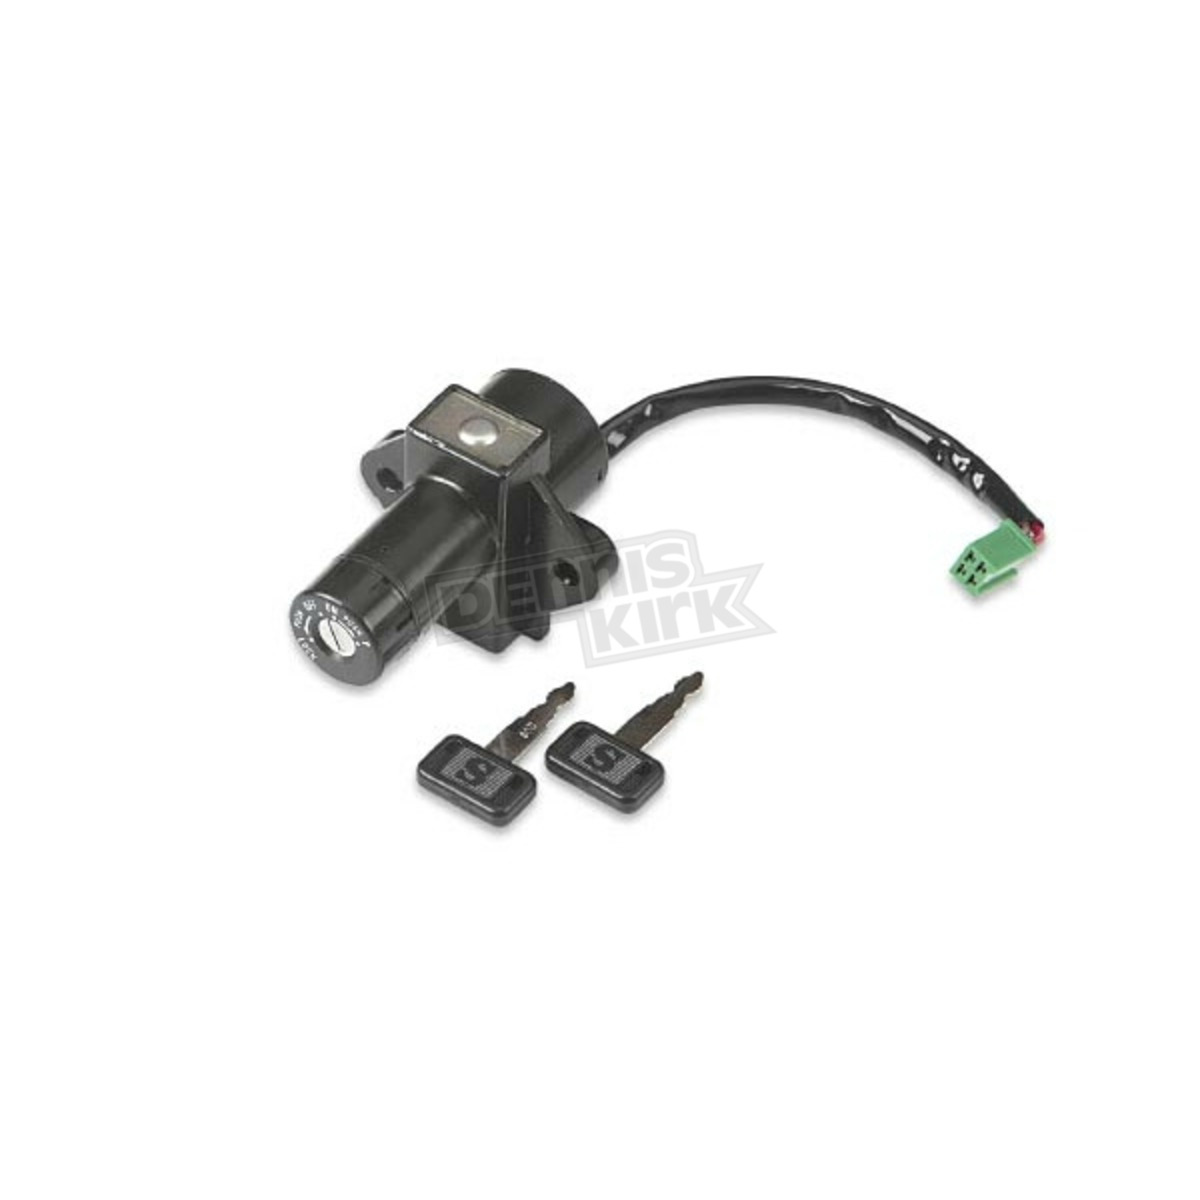 Emgo ignition switch 40 71010 motorcycle dennis kirk emgo ignition switch 40 71010 cheapraybanclubmaster Choice Image